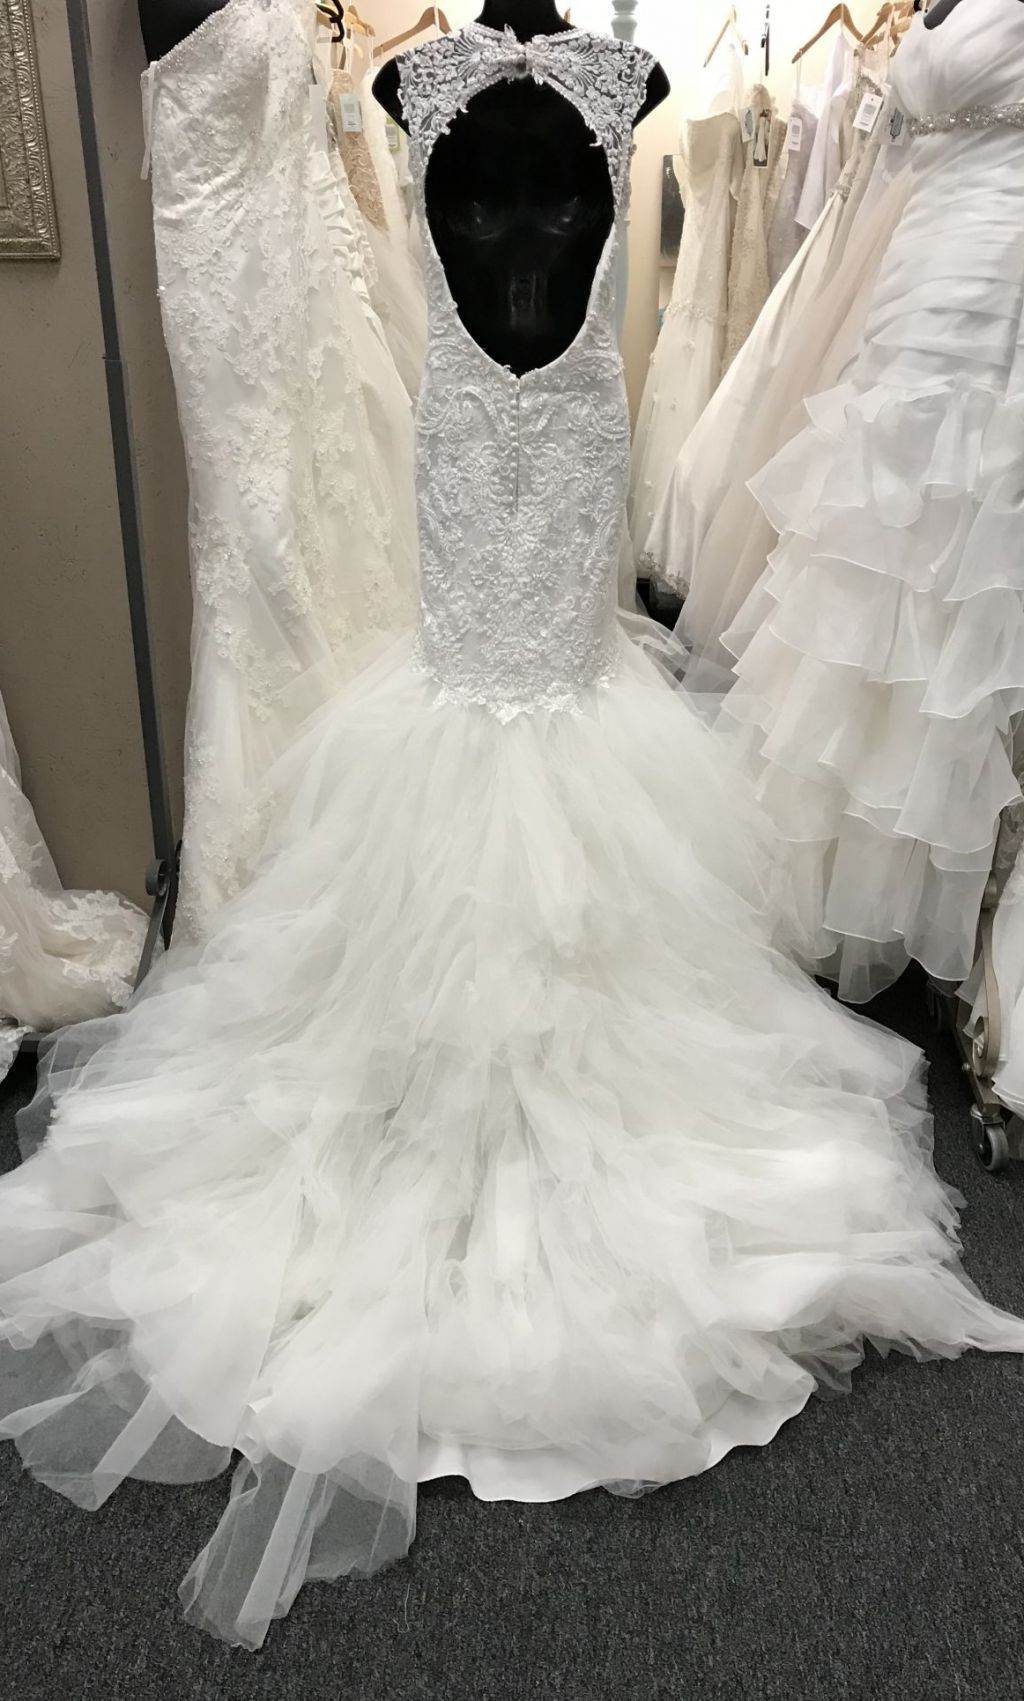 Justin alexander 8827 1 200 size 10 used wedding dresses for Used wedding dresses kansas city